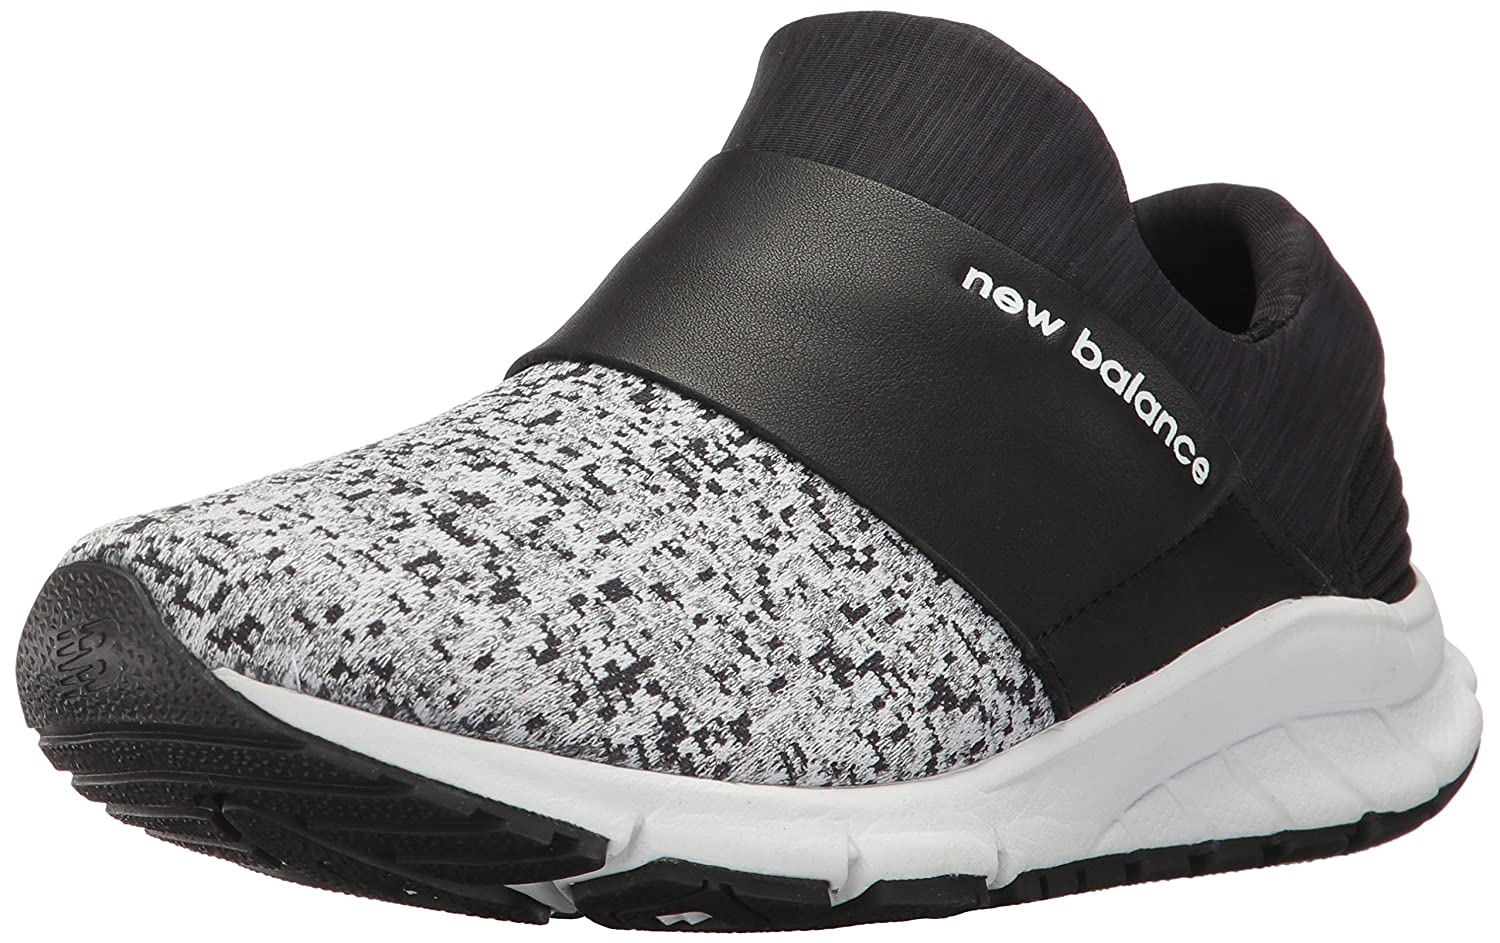 New Balance Women's B01M197MXY Rush Lifestyle Fashion Sneaker B01M197MXY Women's 5.5 B(M) US|Black/White 321915